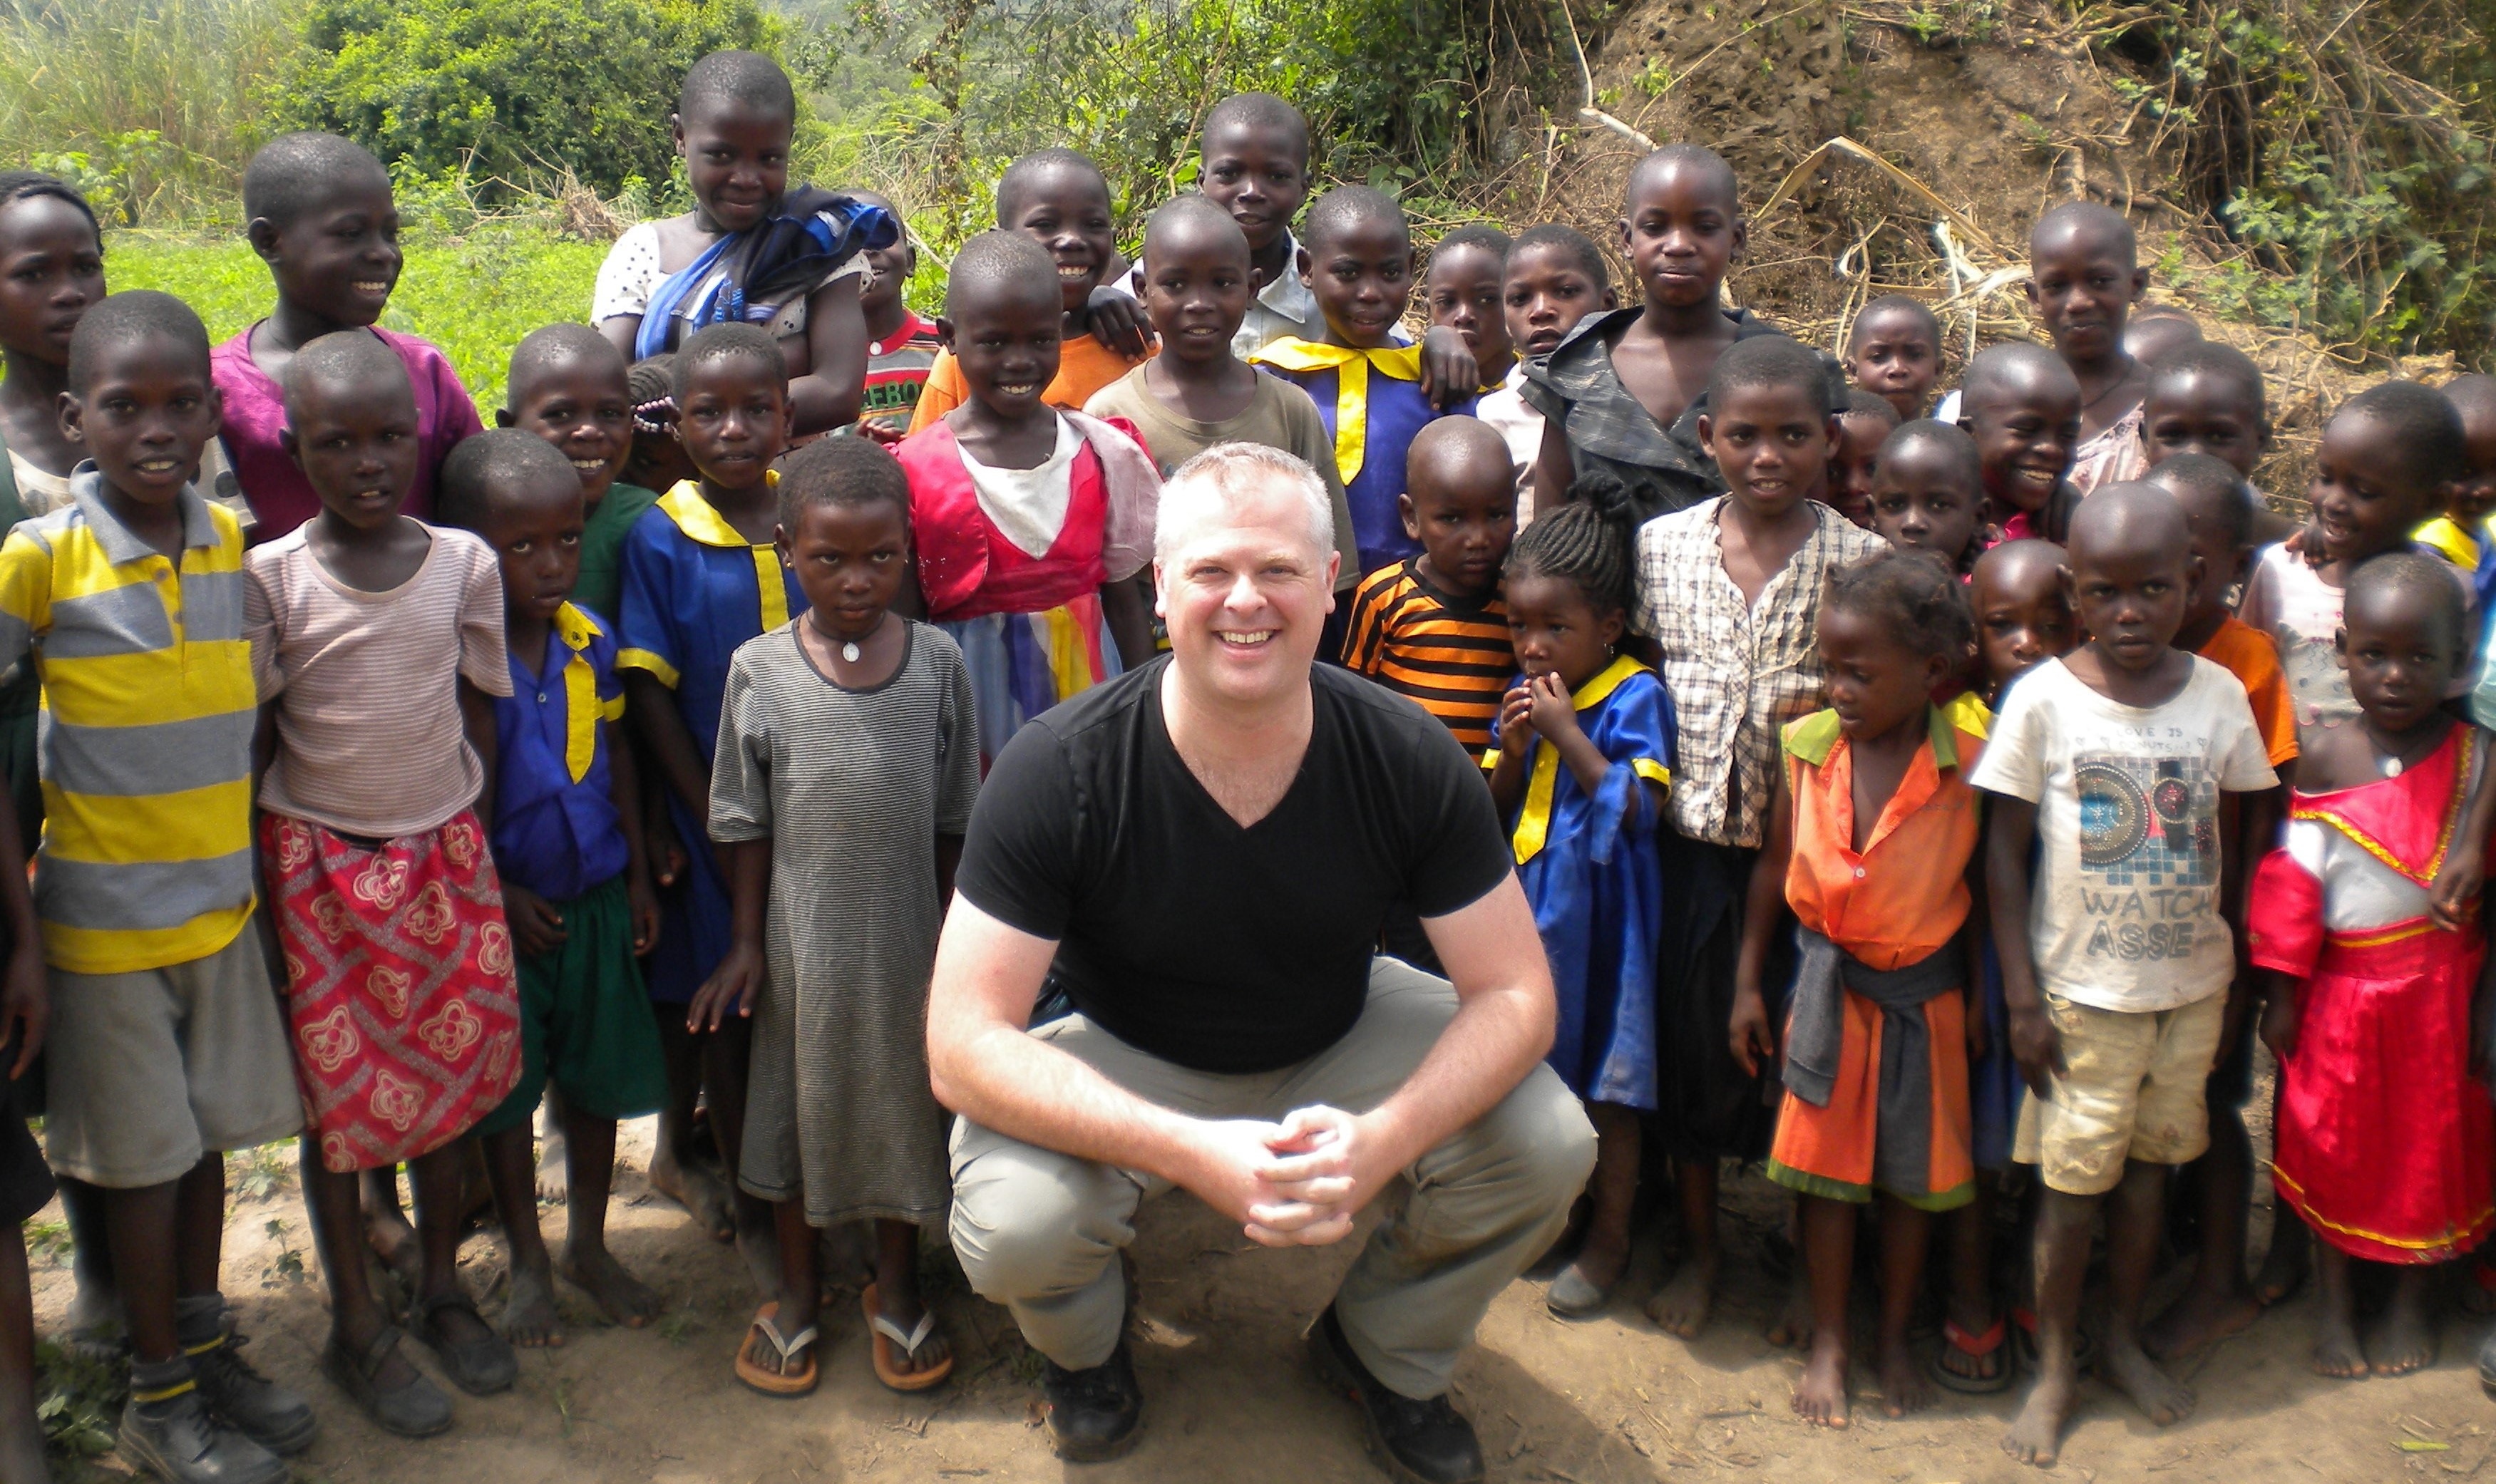 Radish visits its second Life Water UK project in Uganda